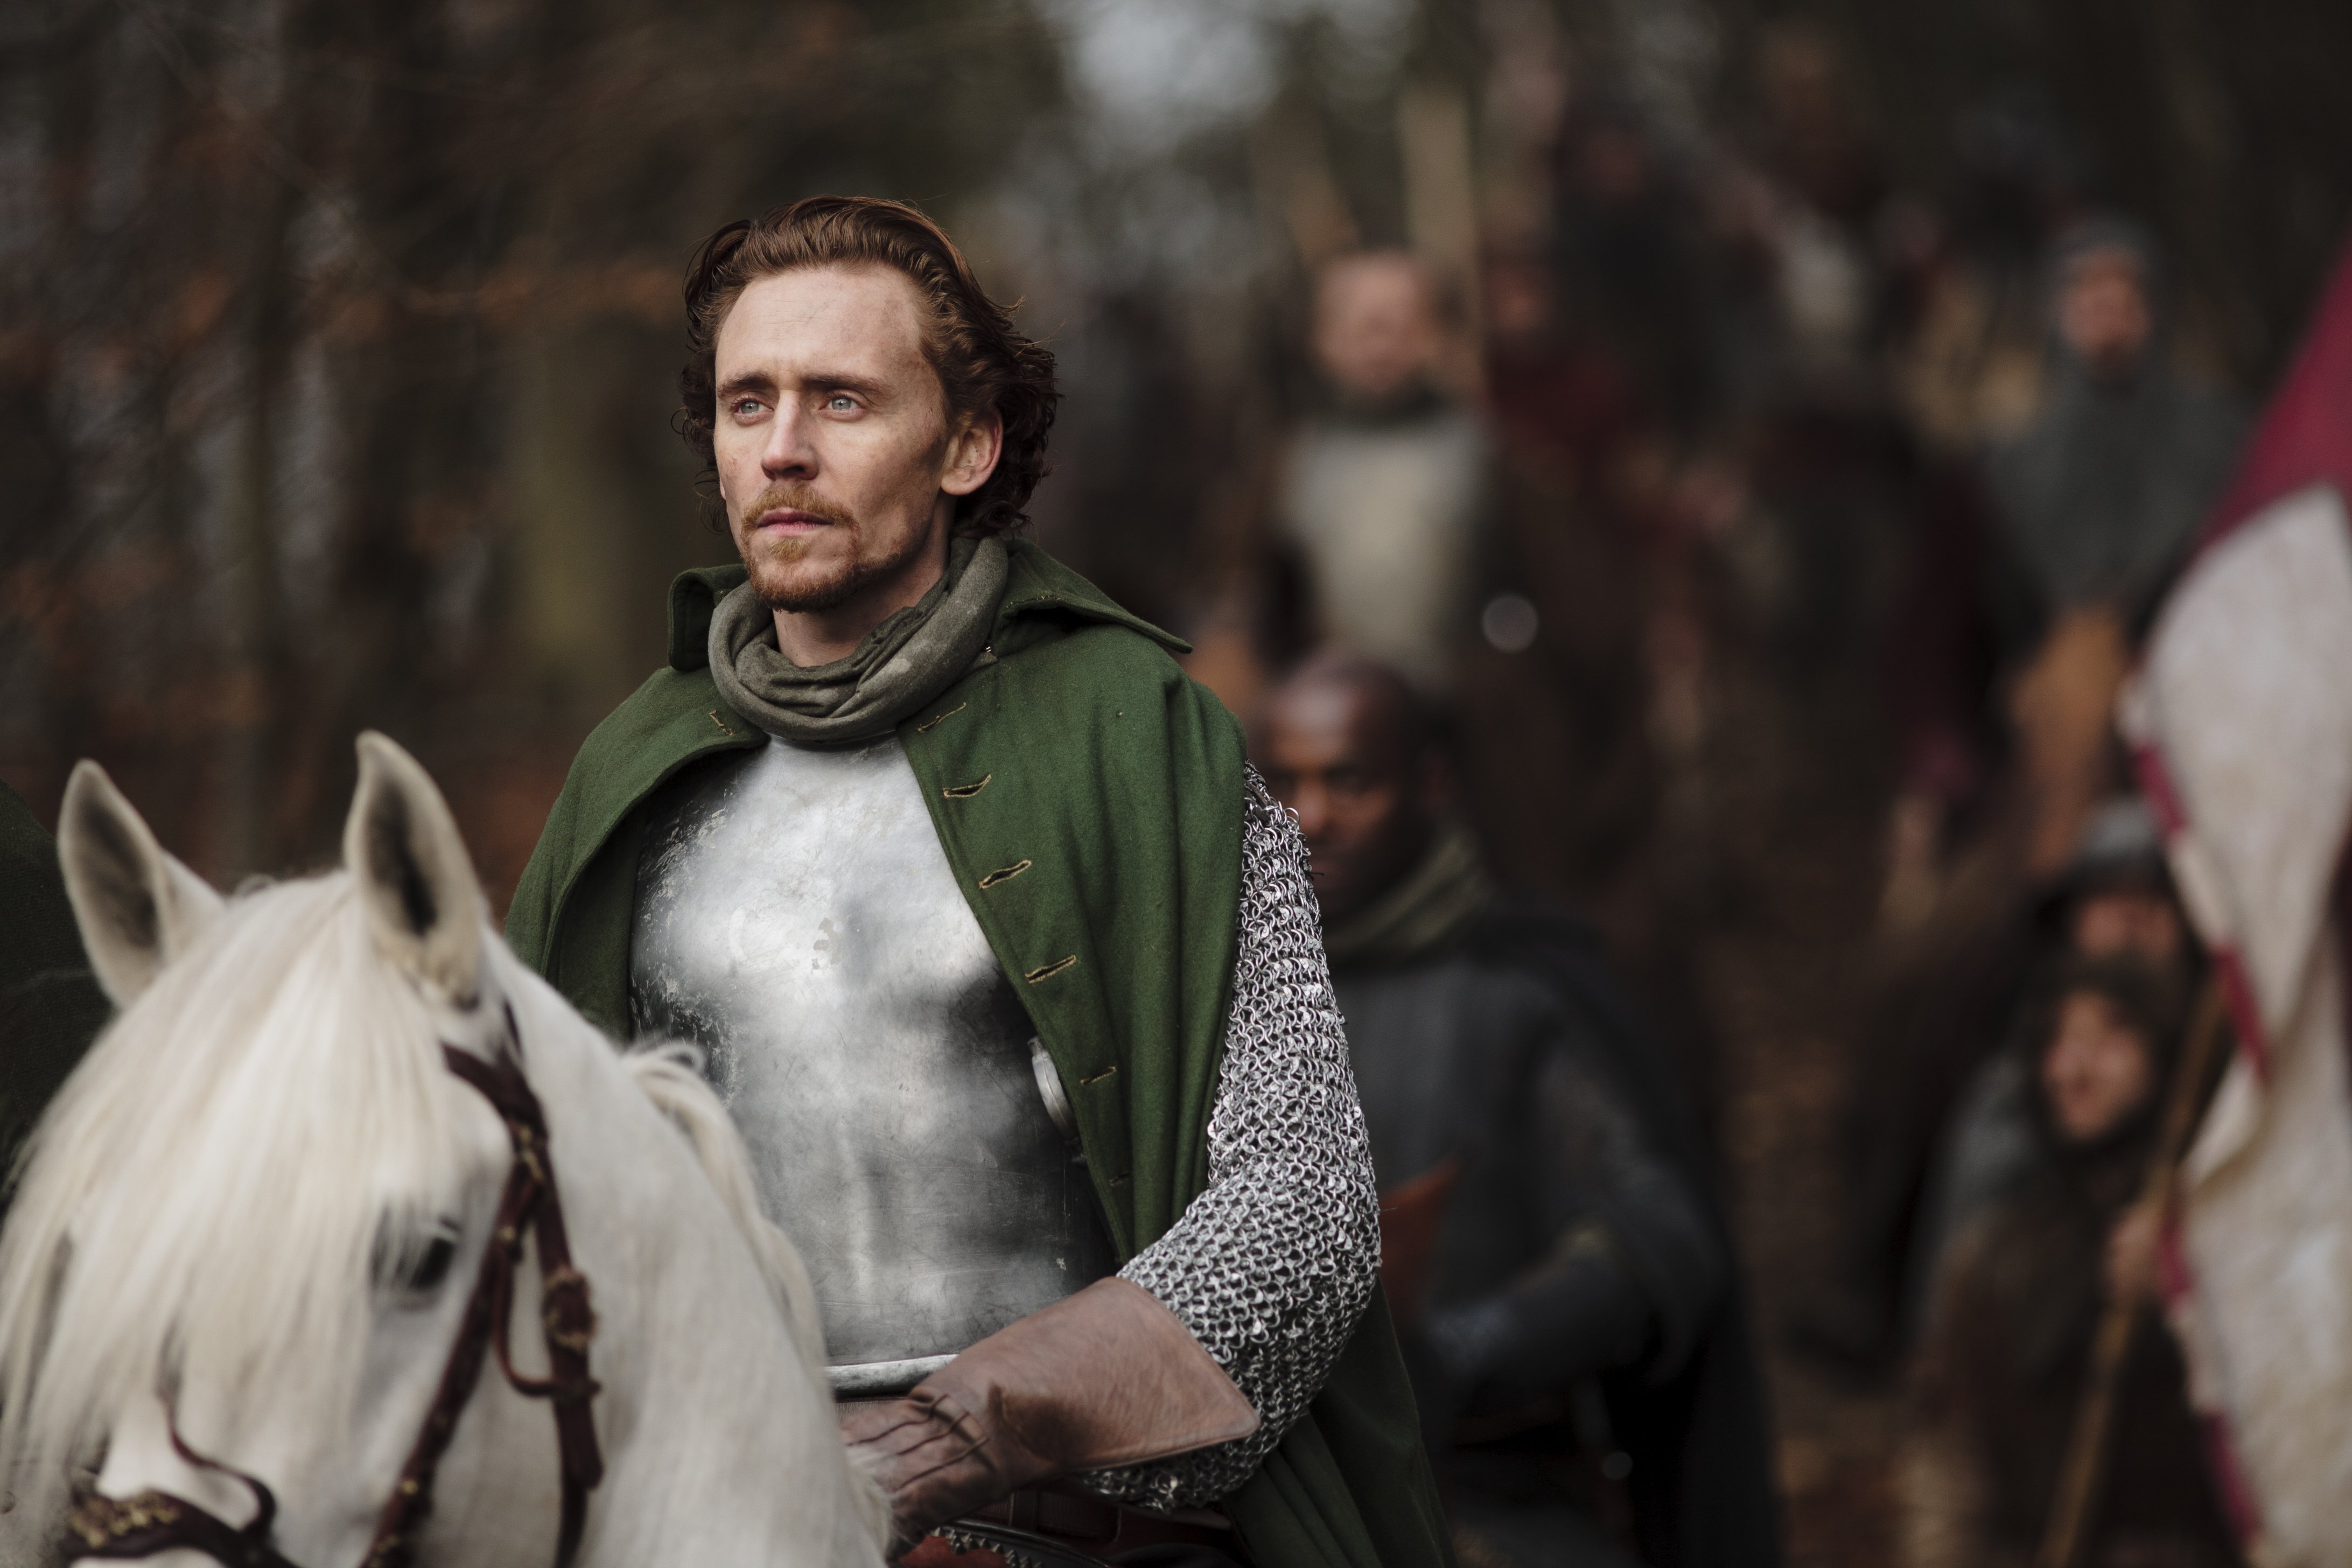 the bbc production of henry iv part i The hollow crown is bbc's magnificent filming of the shakespeare's second henriad (richard ii with henry iv's rise to power, henry iv, parts i and ii, and henry v.